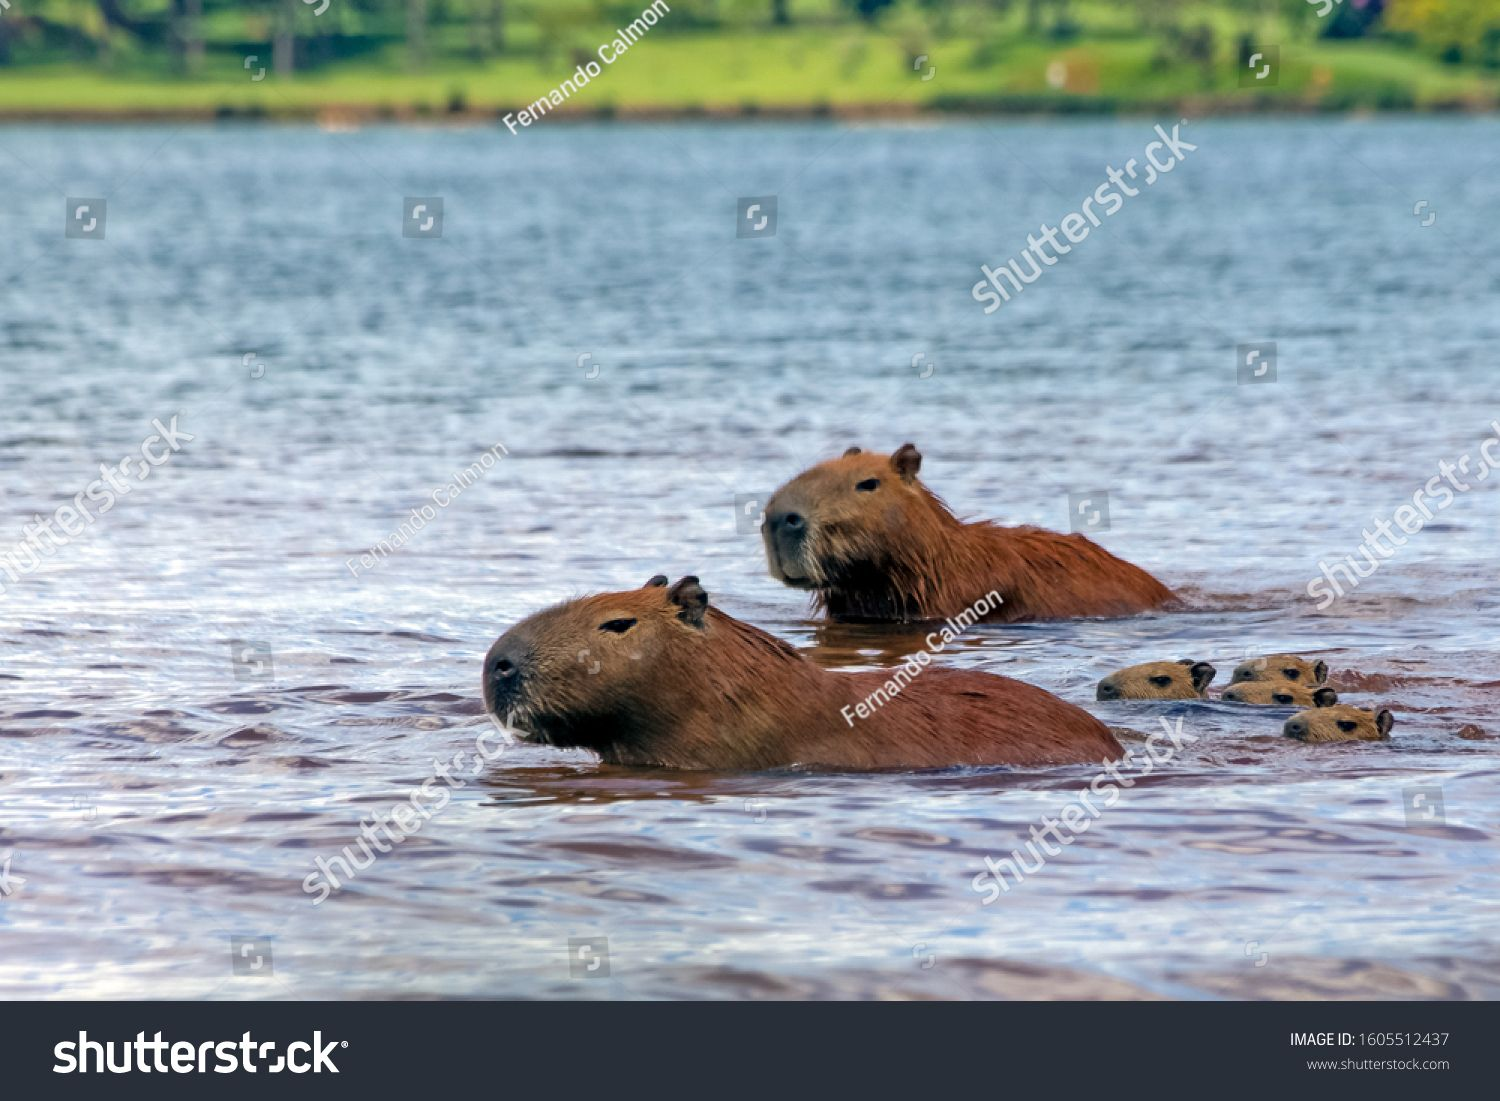 Capybaras pups follow their parents inside Lake Parano¨¢ in Brasilia, Brazil. The capybara is the largest rodent in the world. Species Hydrochoerus hydrochaeris. Wildlife. Cerrado. #Ad , #Ad, #Parano#Lake#Brazil#Brasilia